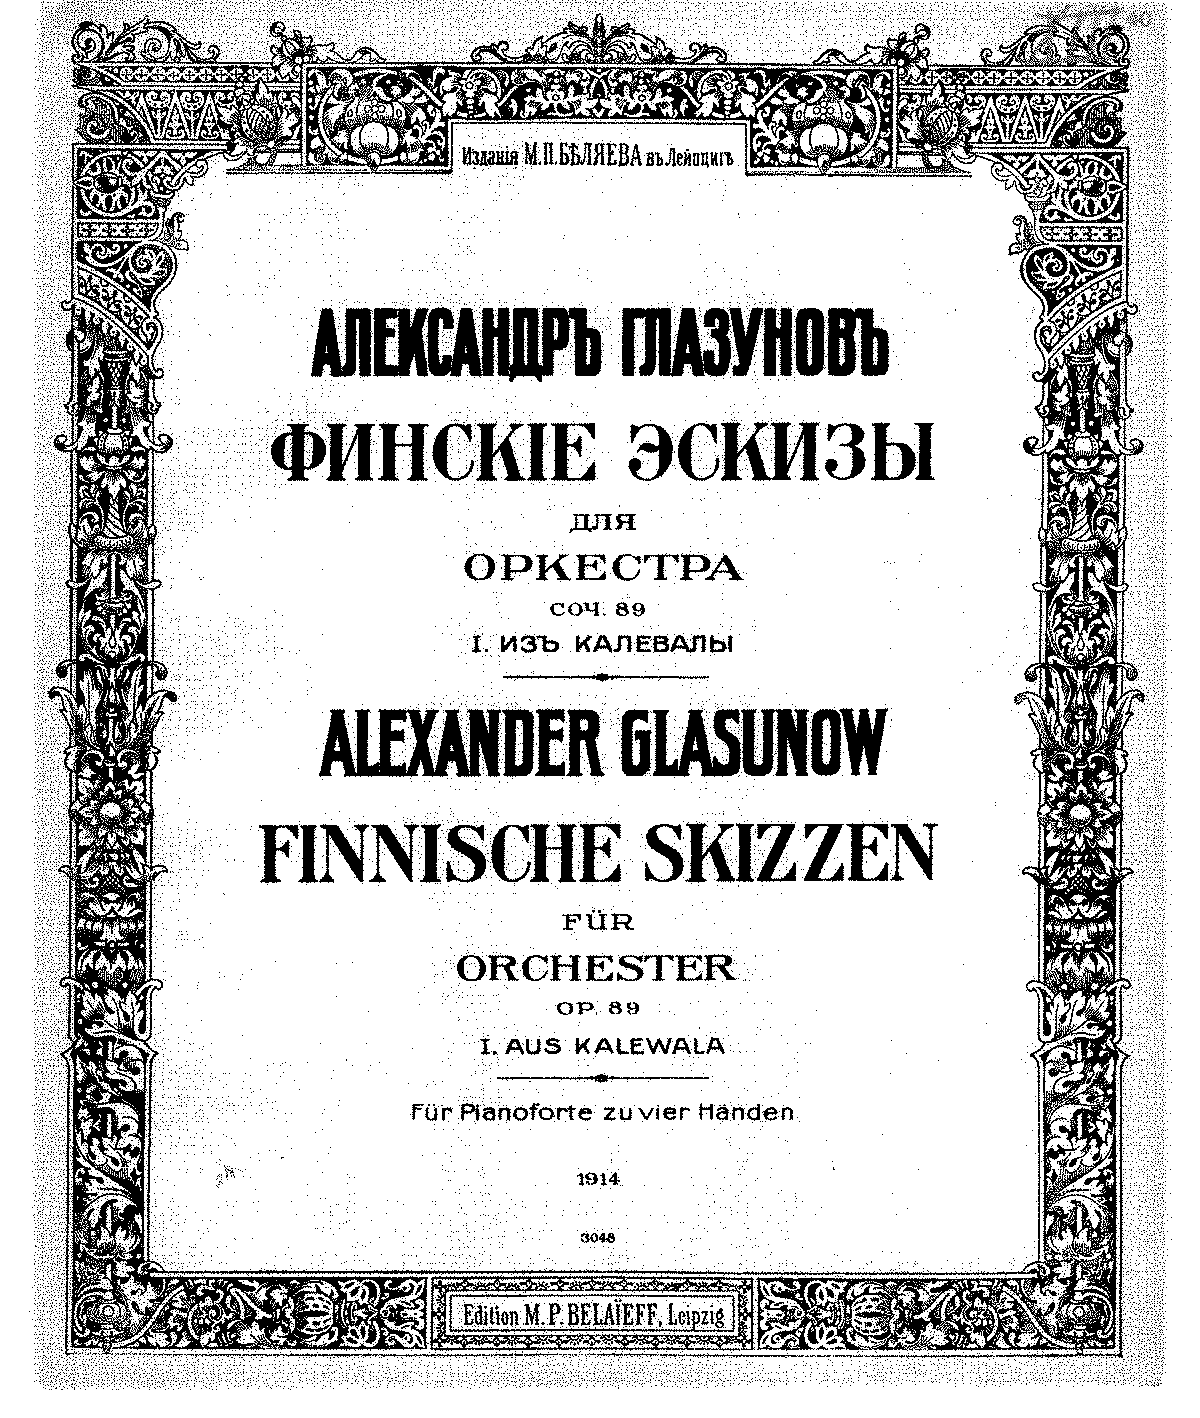 Glazunov - Op.89 - Finnish Sketches in E major for orchestra (4H).pdf